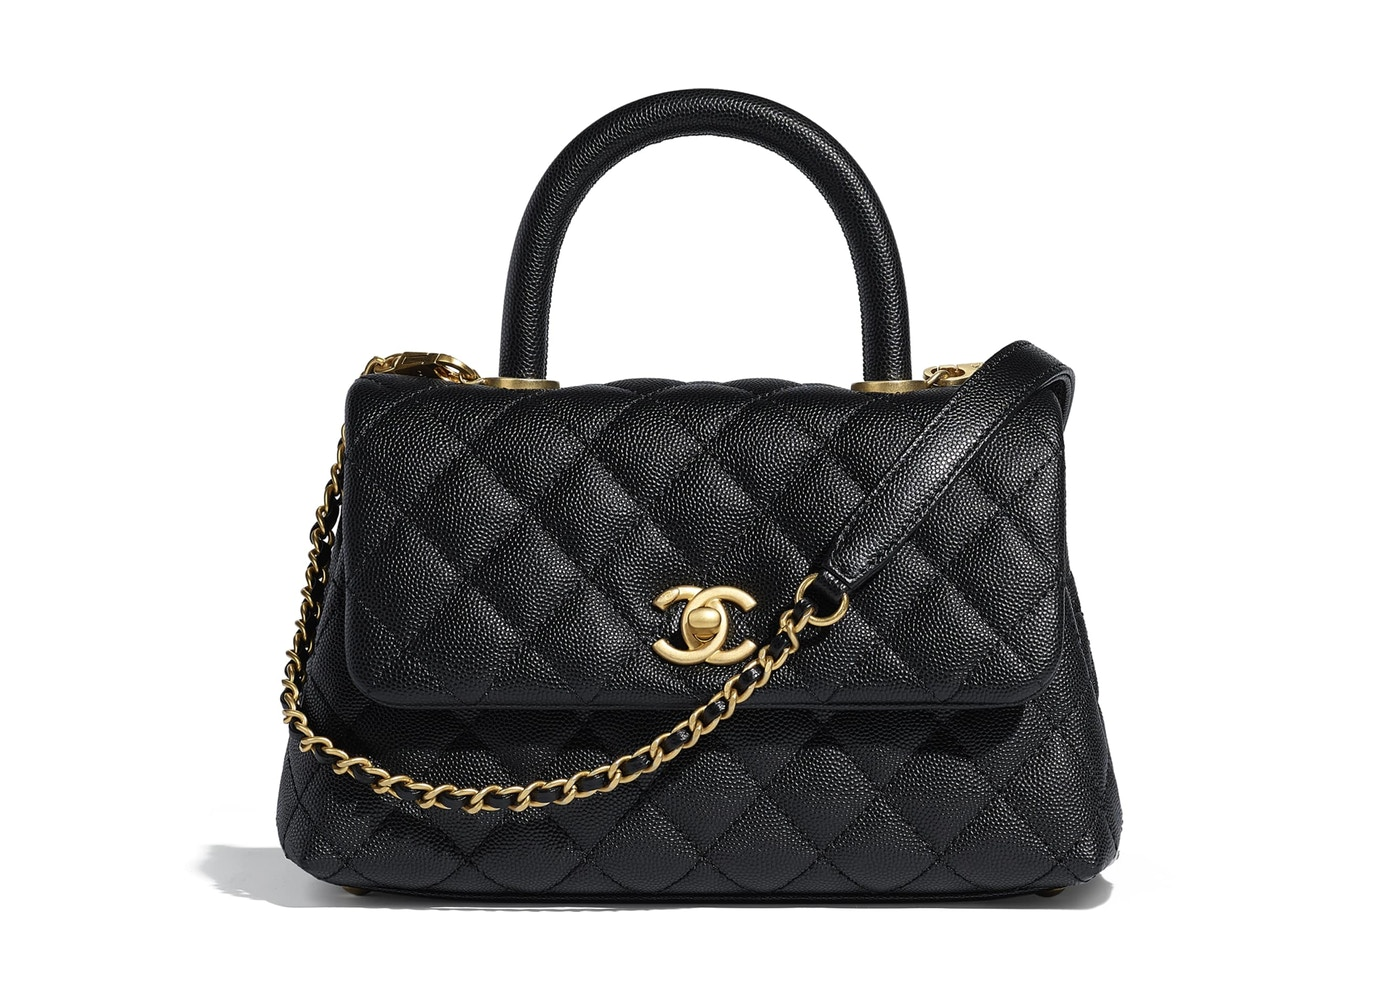 6eb14488112f53 Chanel Flap Bag Top Handle Quilted Grained Calfskin Gold-tone ...